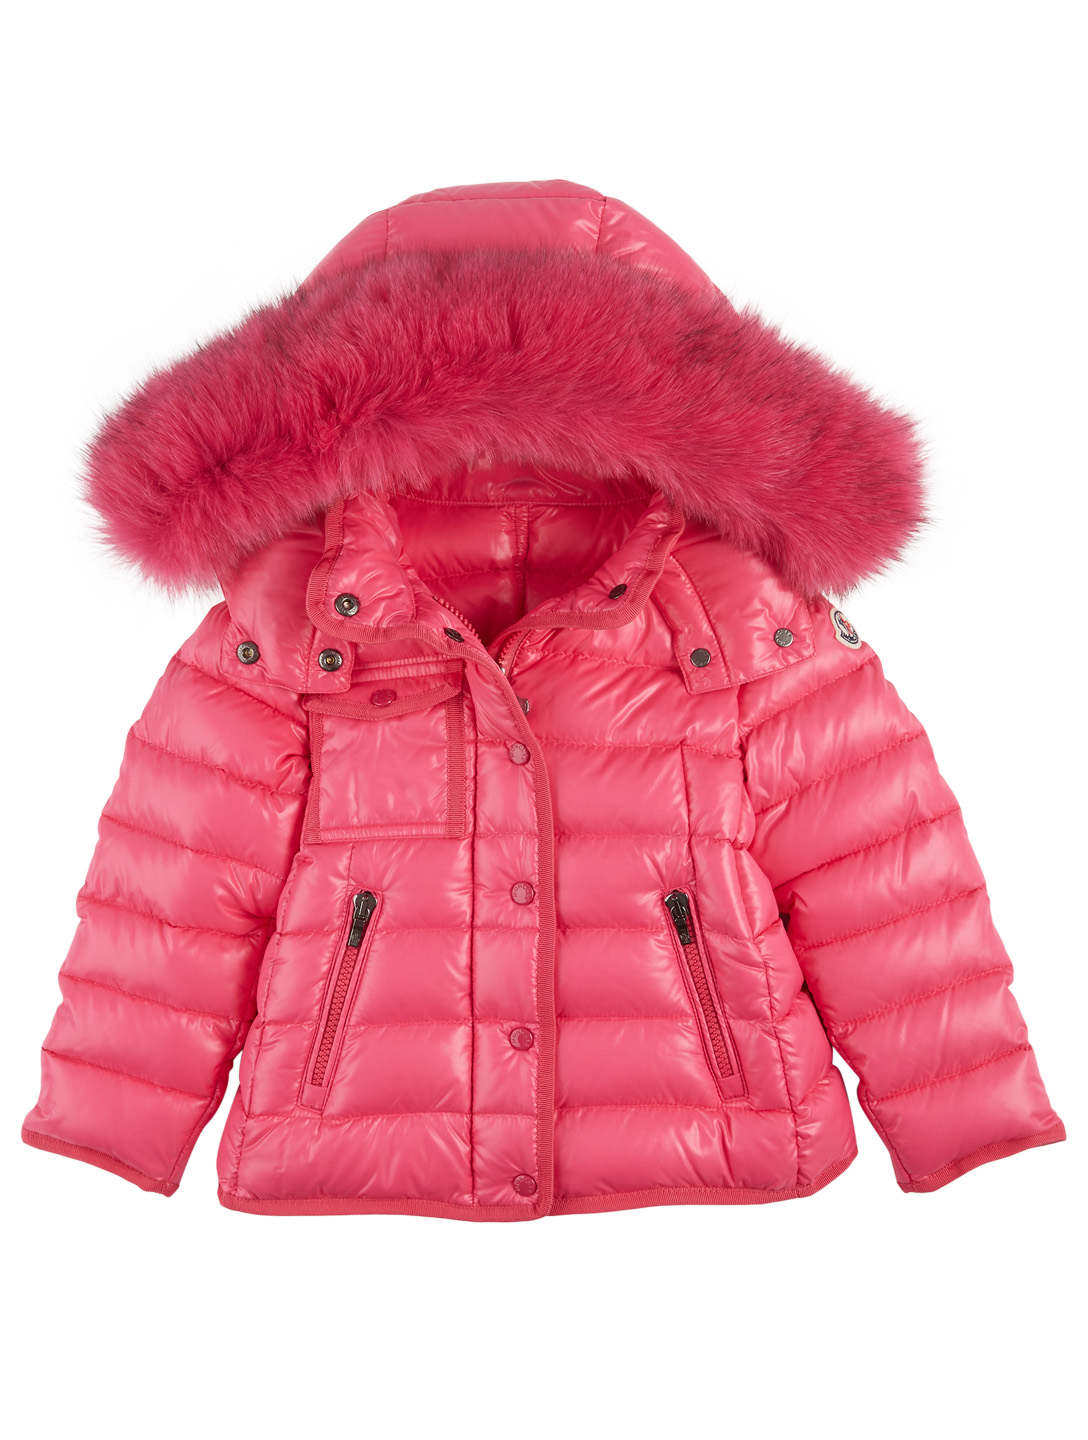 MONCLER ENFANT Kids New Armoise Down Jacket With Fur Hood Kids Pink